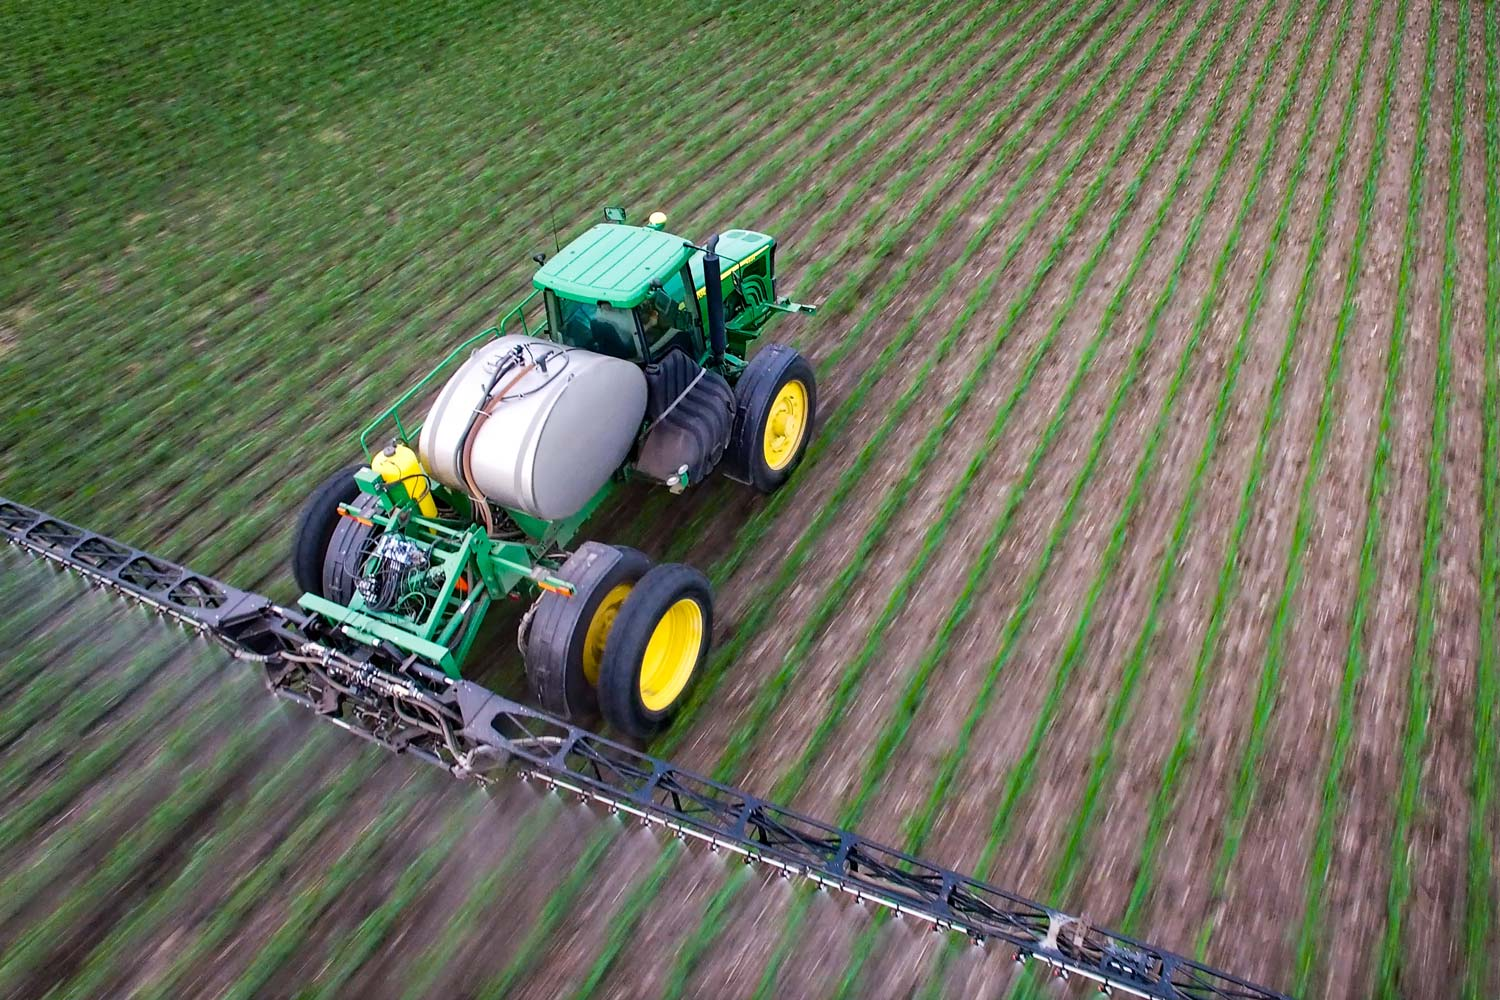 A John Deere 4920 sprayer with 380/90R46 duals on the rear only